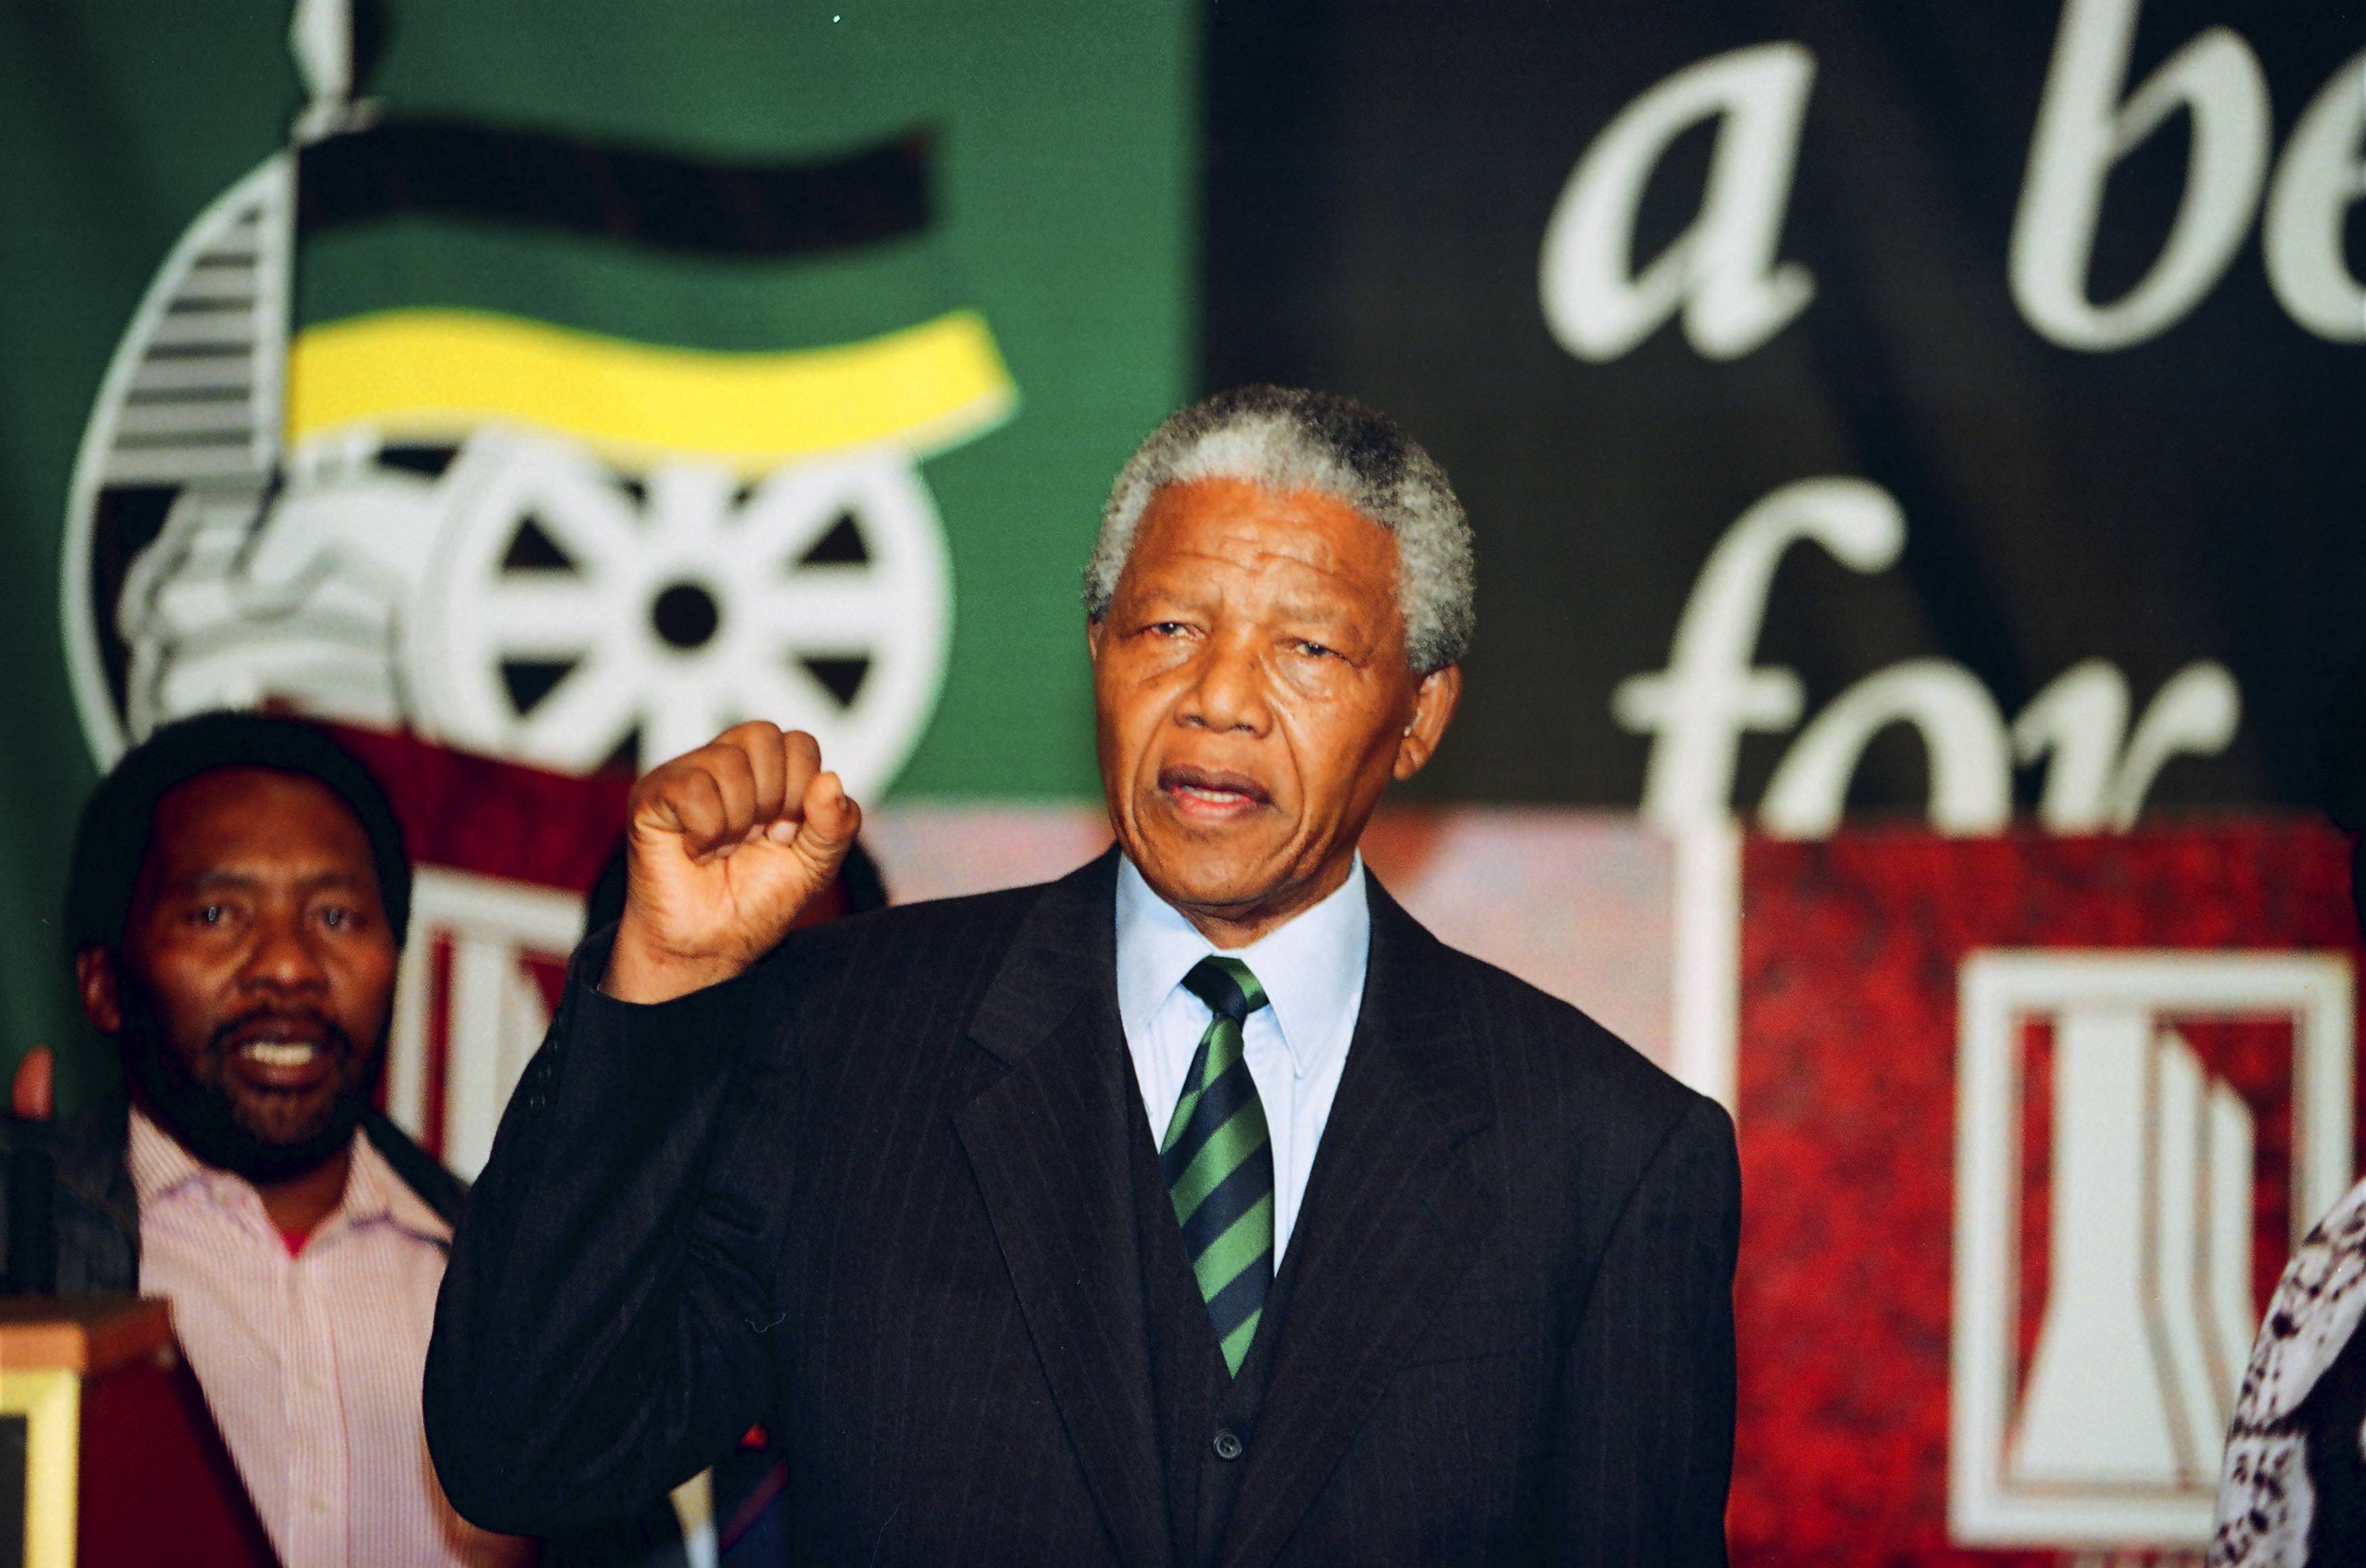 Nelson Mandela President 1994 Almost till his death,...